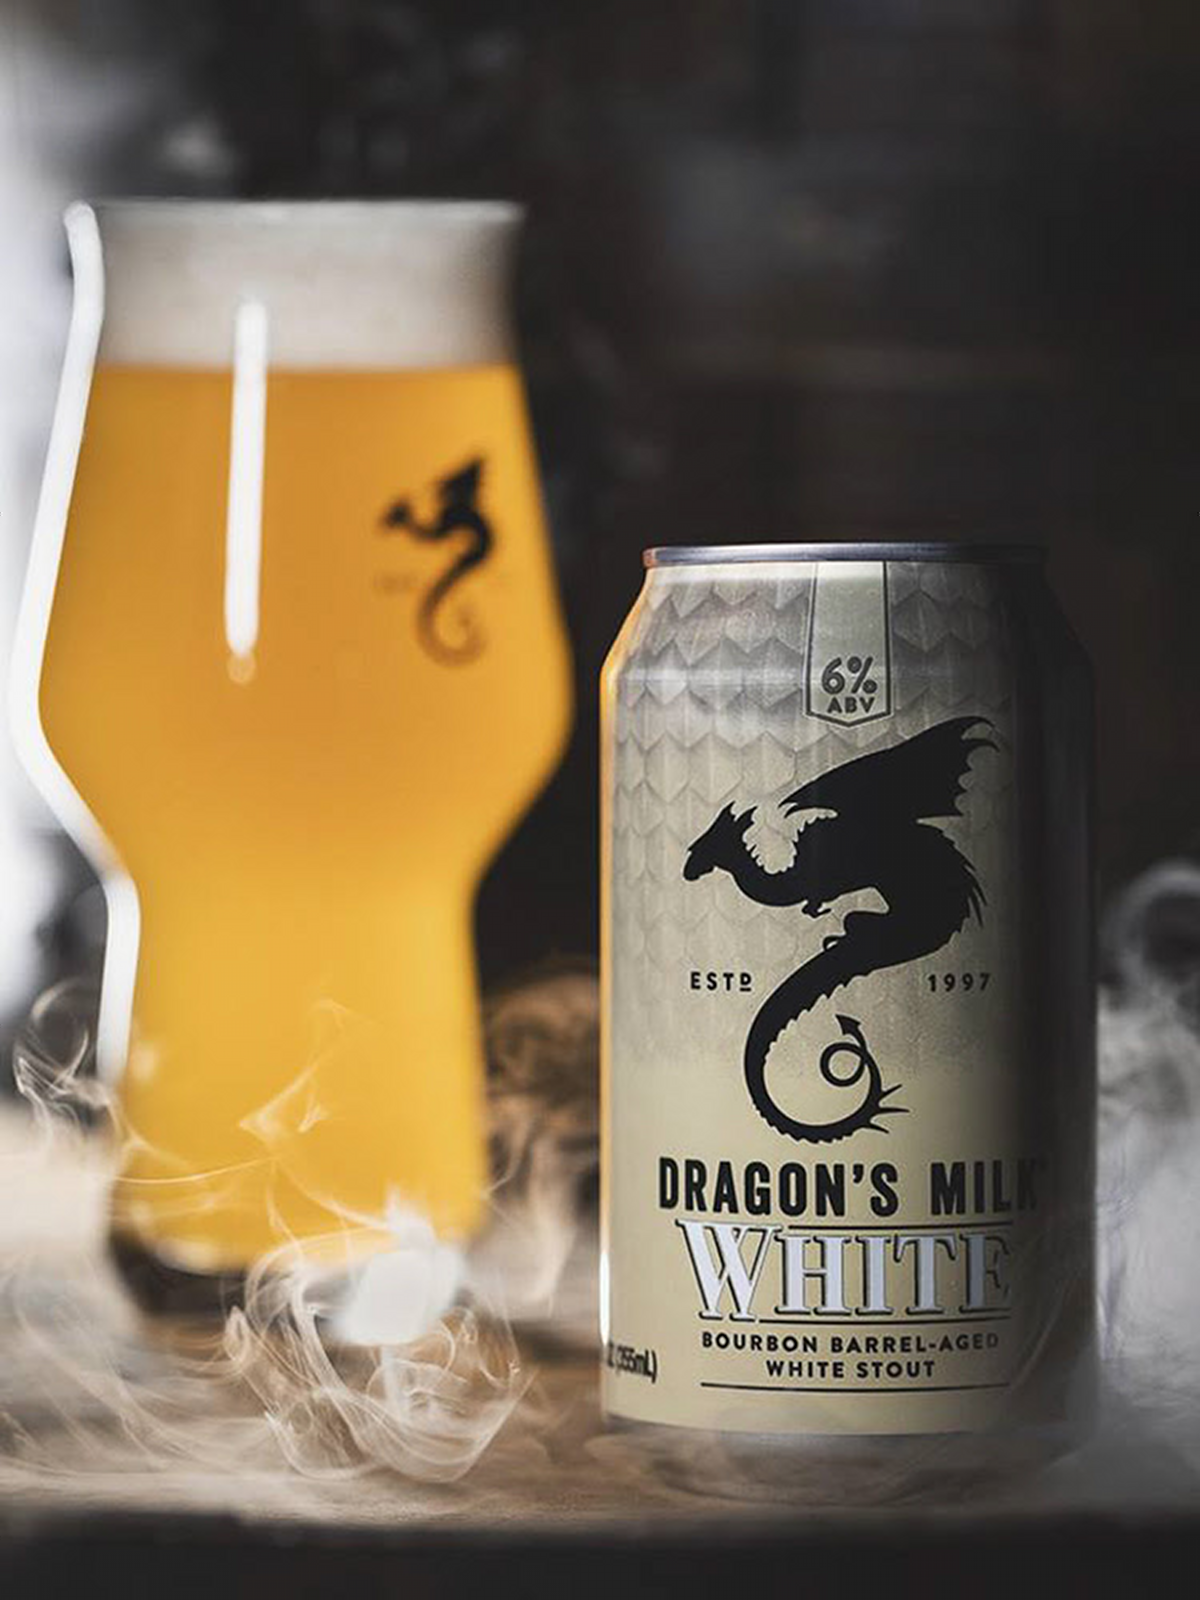 New Holland Brewing Dragon's Milk White stout beer can and glass